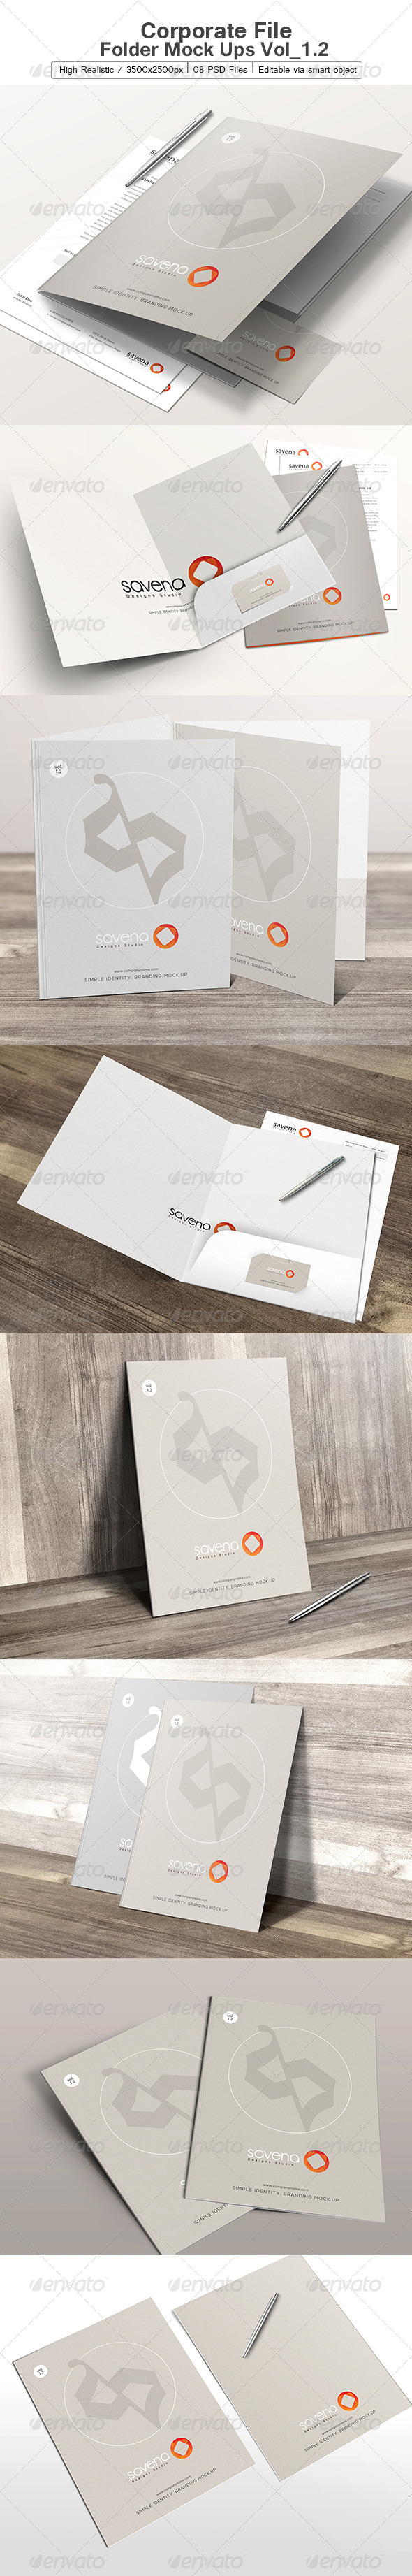 Corporate File Folder Mock Ups Vol_1.2 - Product Mock-Ups Graphics